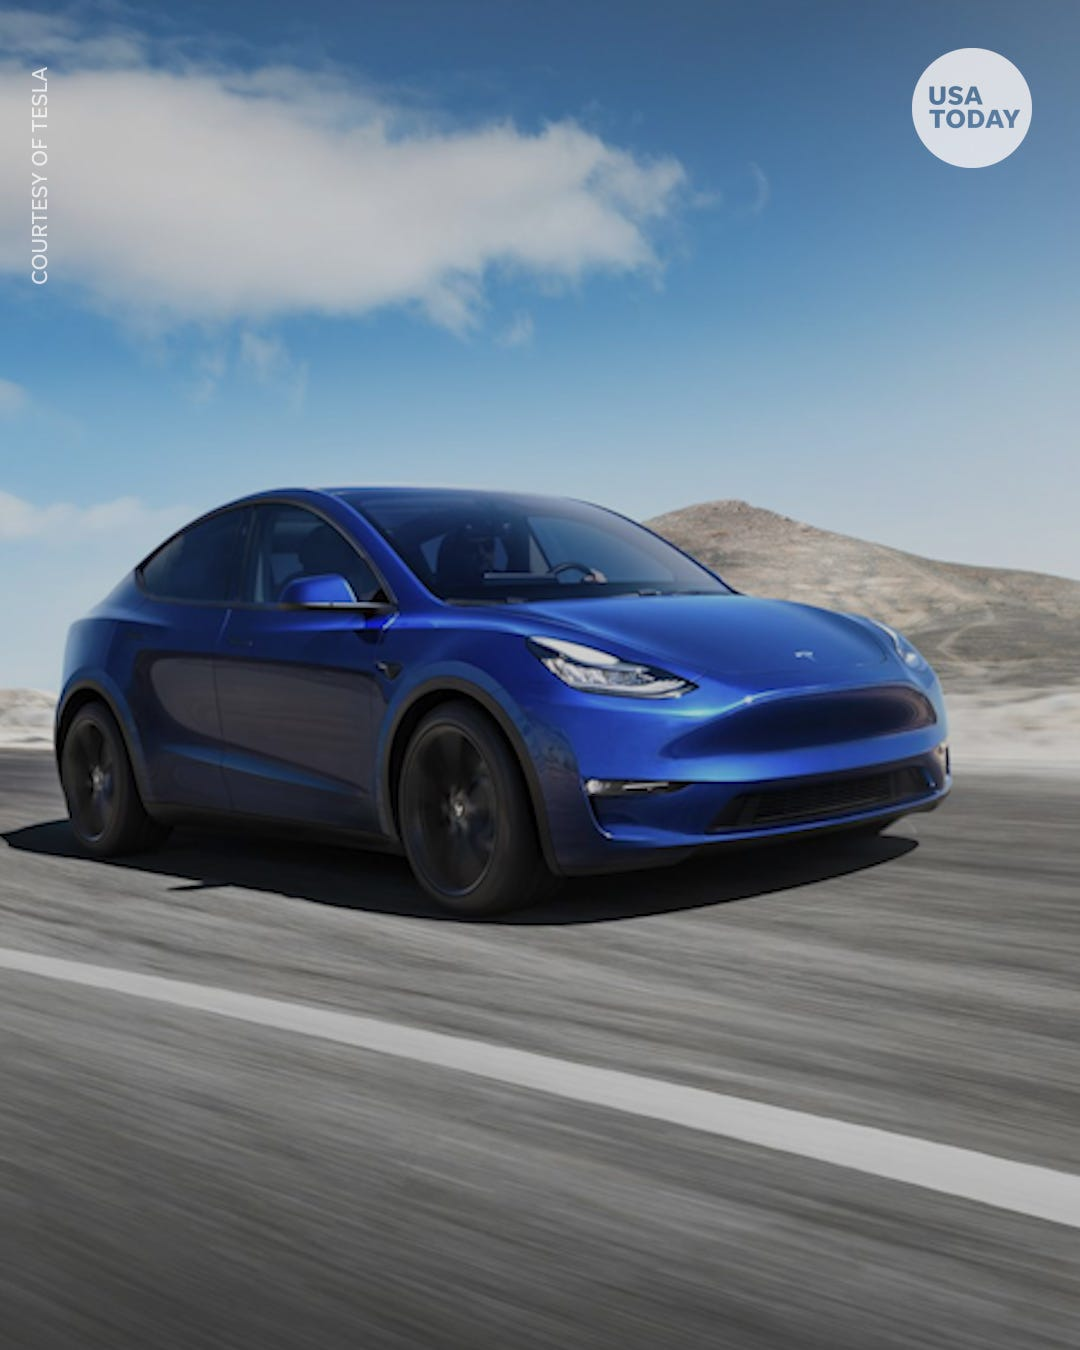 Tesla: Tesla Unveils New Model Y SUV